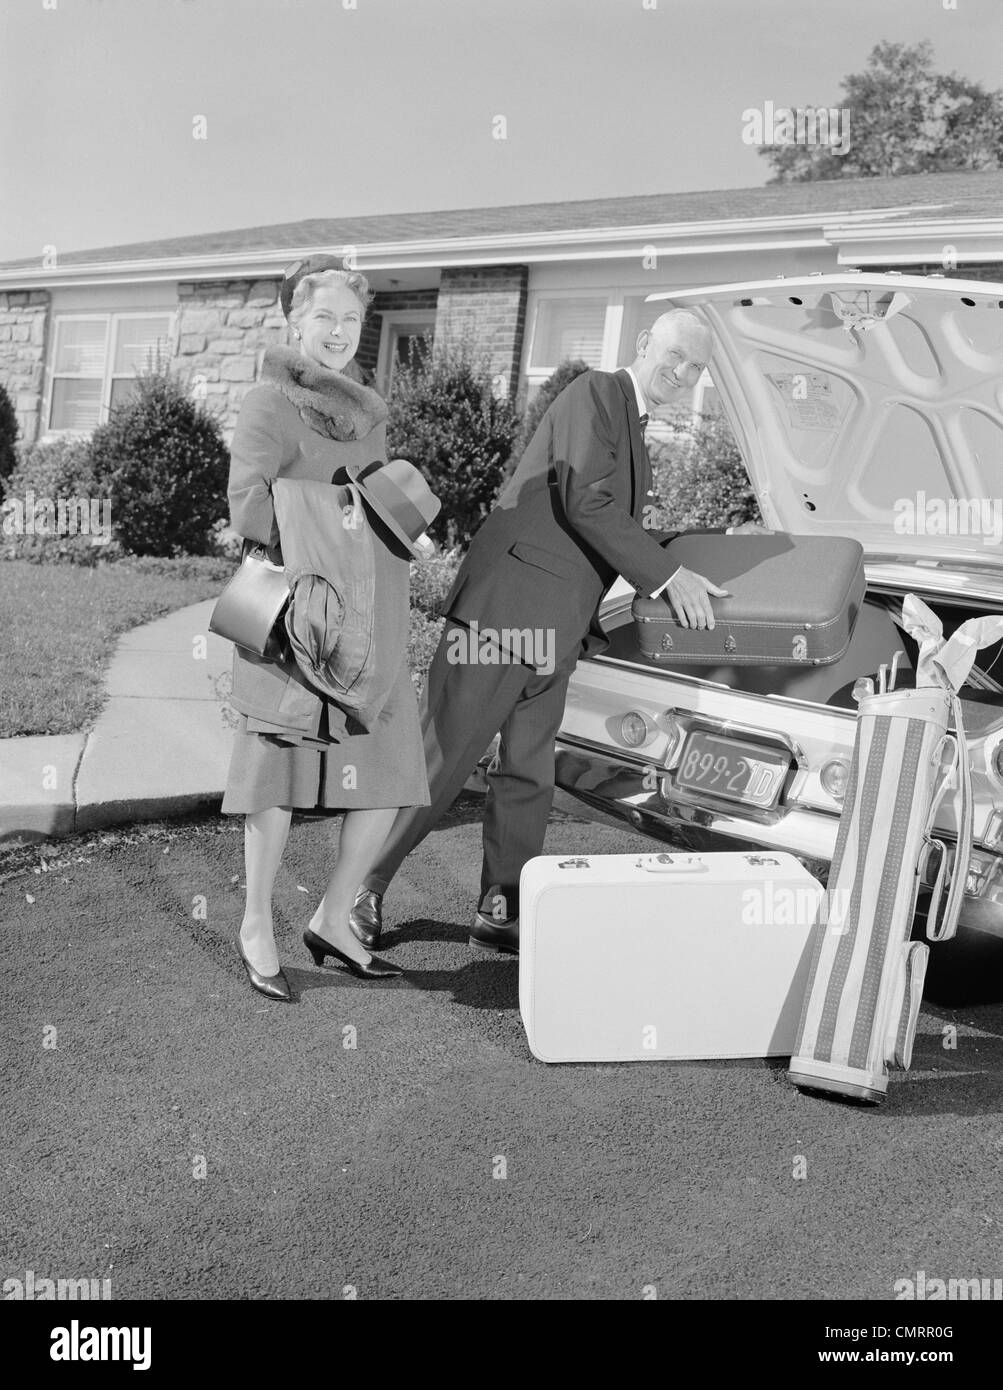 1960s SENIOR MAN WOMAN HUSBAND WIFE PACKING TRUNK WITH LUGGAGE - Stock Image